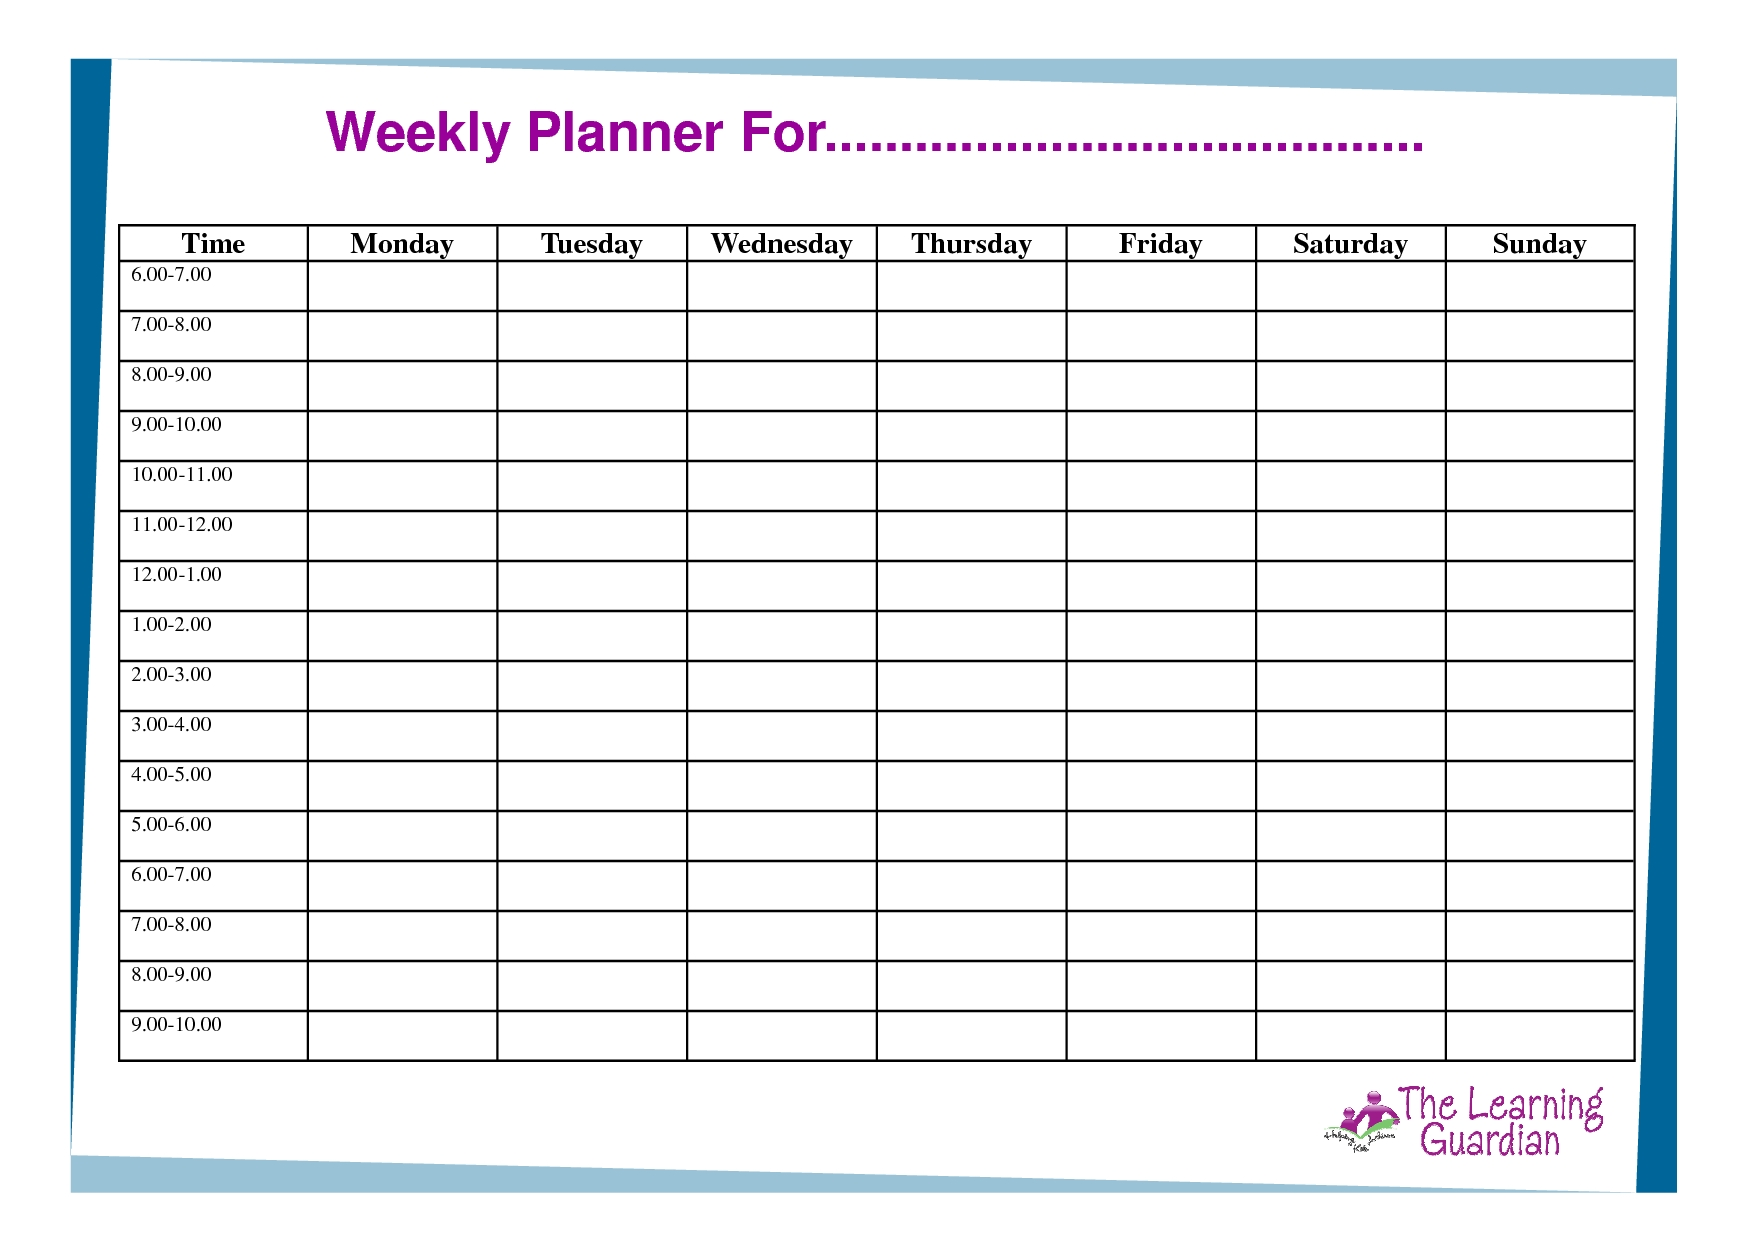 Free Printable Weekly Calendar Templates | Weekly Planner For Time with Free Printable Calendar Monday Through Friday With Notes